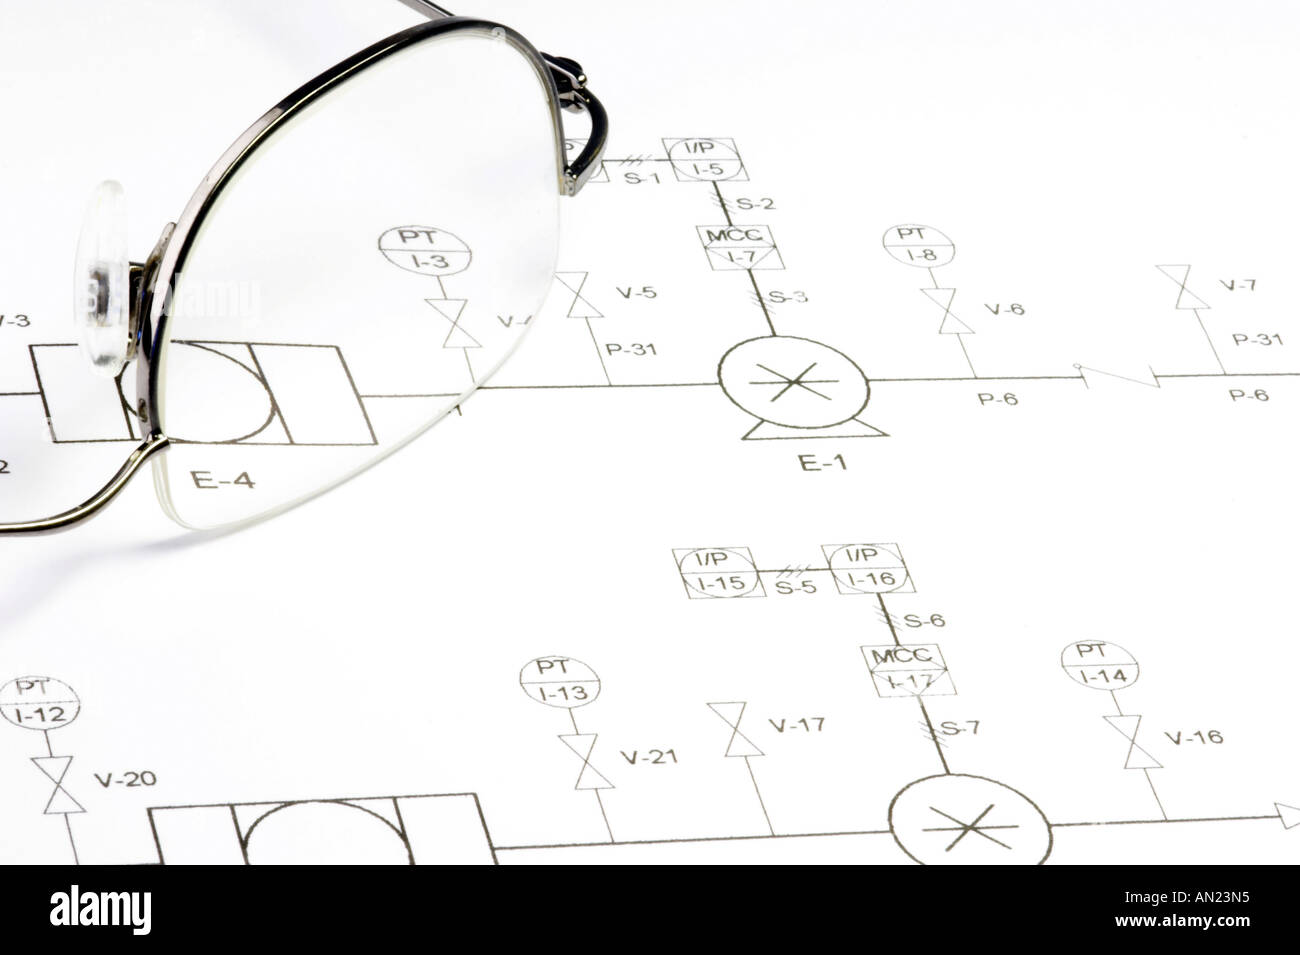 hight resolution of schematic circuit diagram and glasses stock image